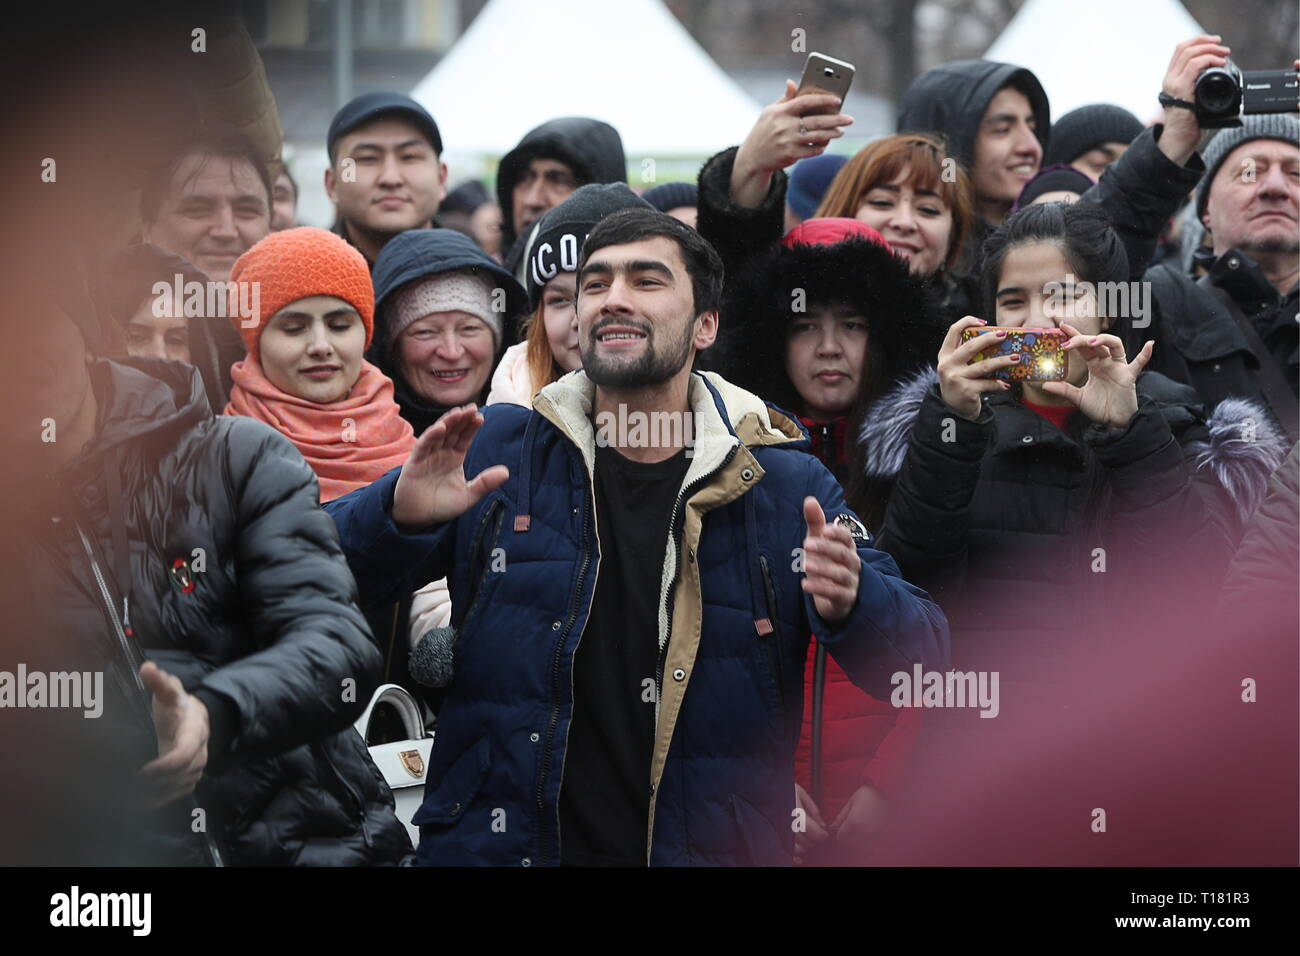 Moscow, Russia  24th Mar, 2019  MOSCOW, RUSSIA - MARCH 24